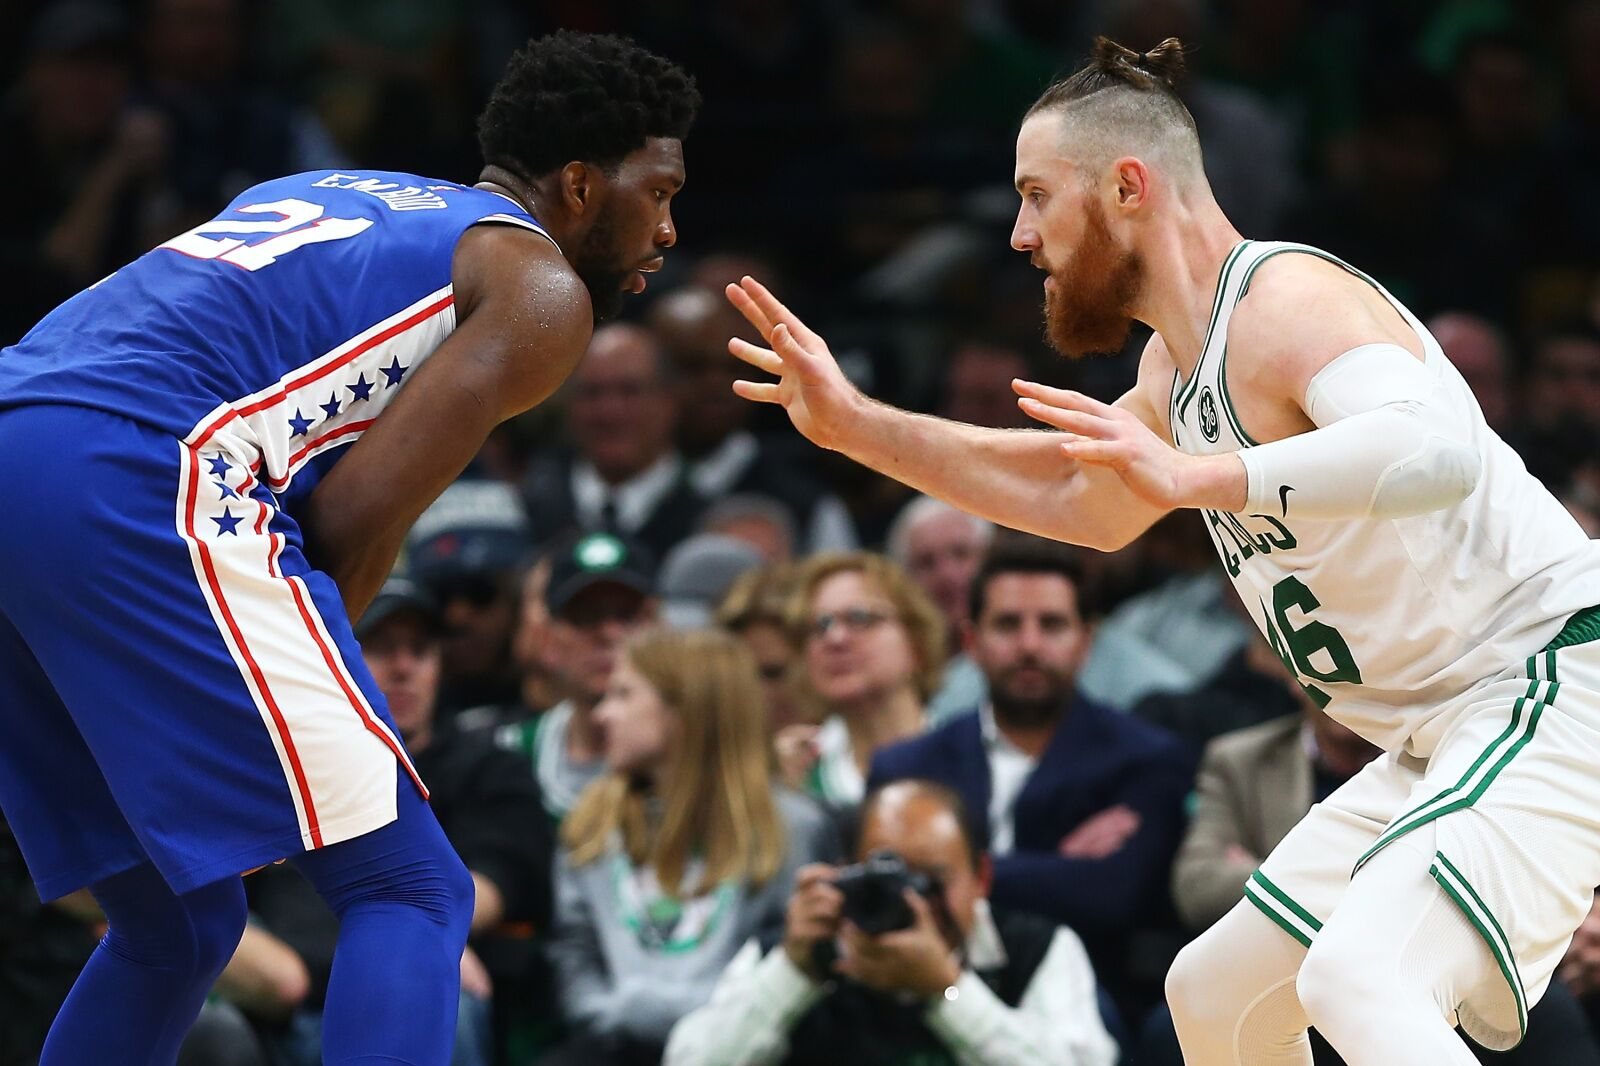 Nylon Calculus: Are Al Horford and Aron Baynes the NBA's premier Embiid-stoppers?